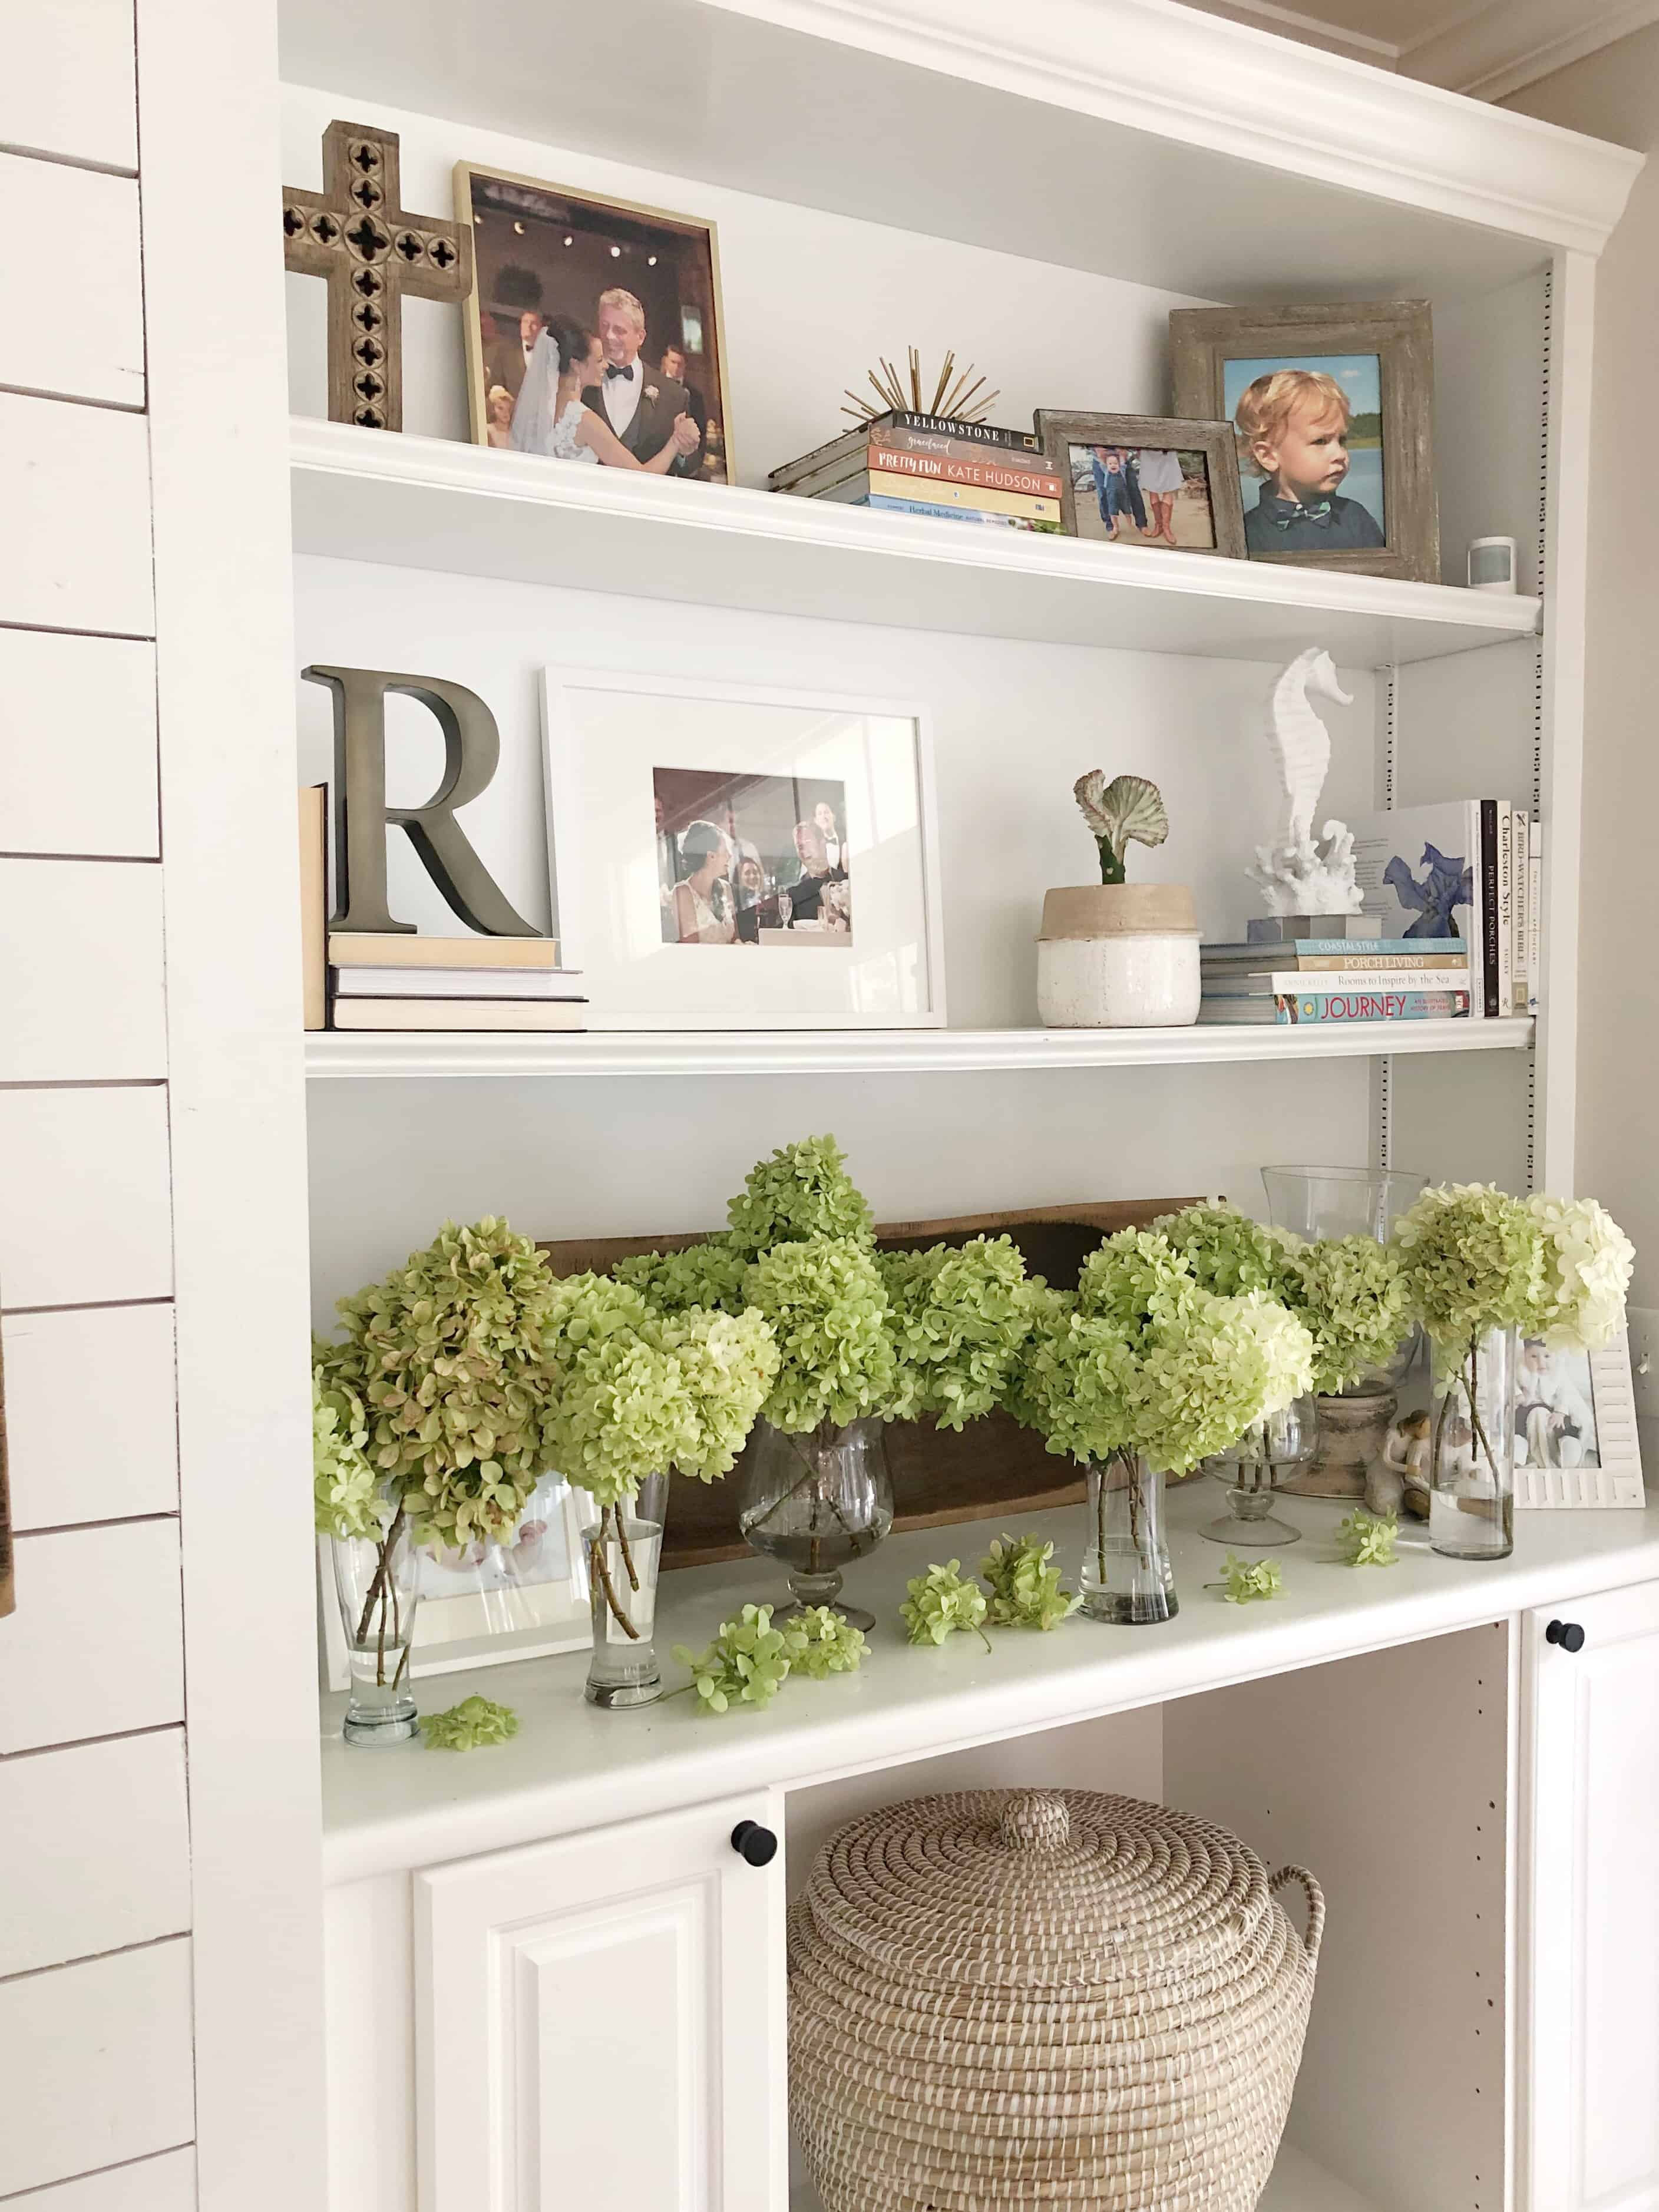 A quick and easy way to dry limelight hydrangeas by leaving them to dry in vases. #falldecor #hydrangeas #fallhydrangeas #dryingflowers #dryinghydrangeas #limelighthydrangeas #preservingflowers